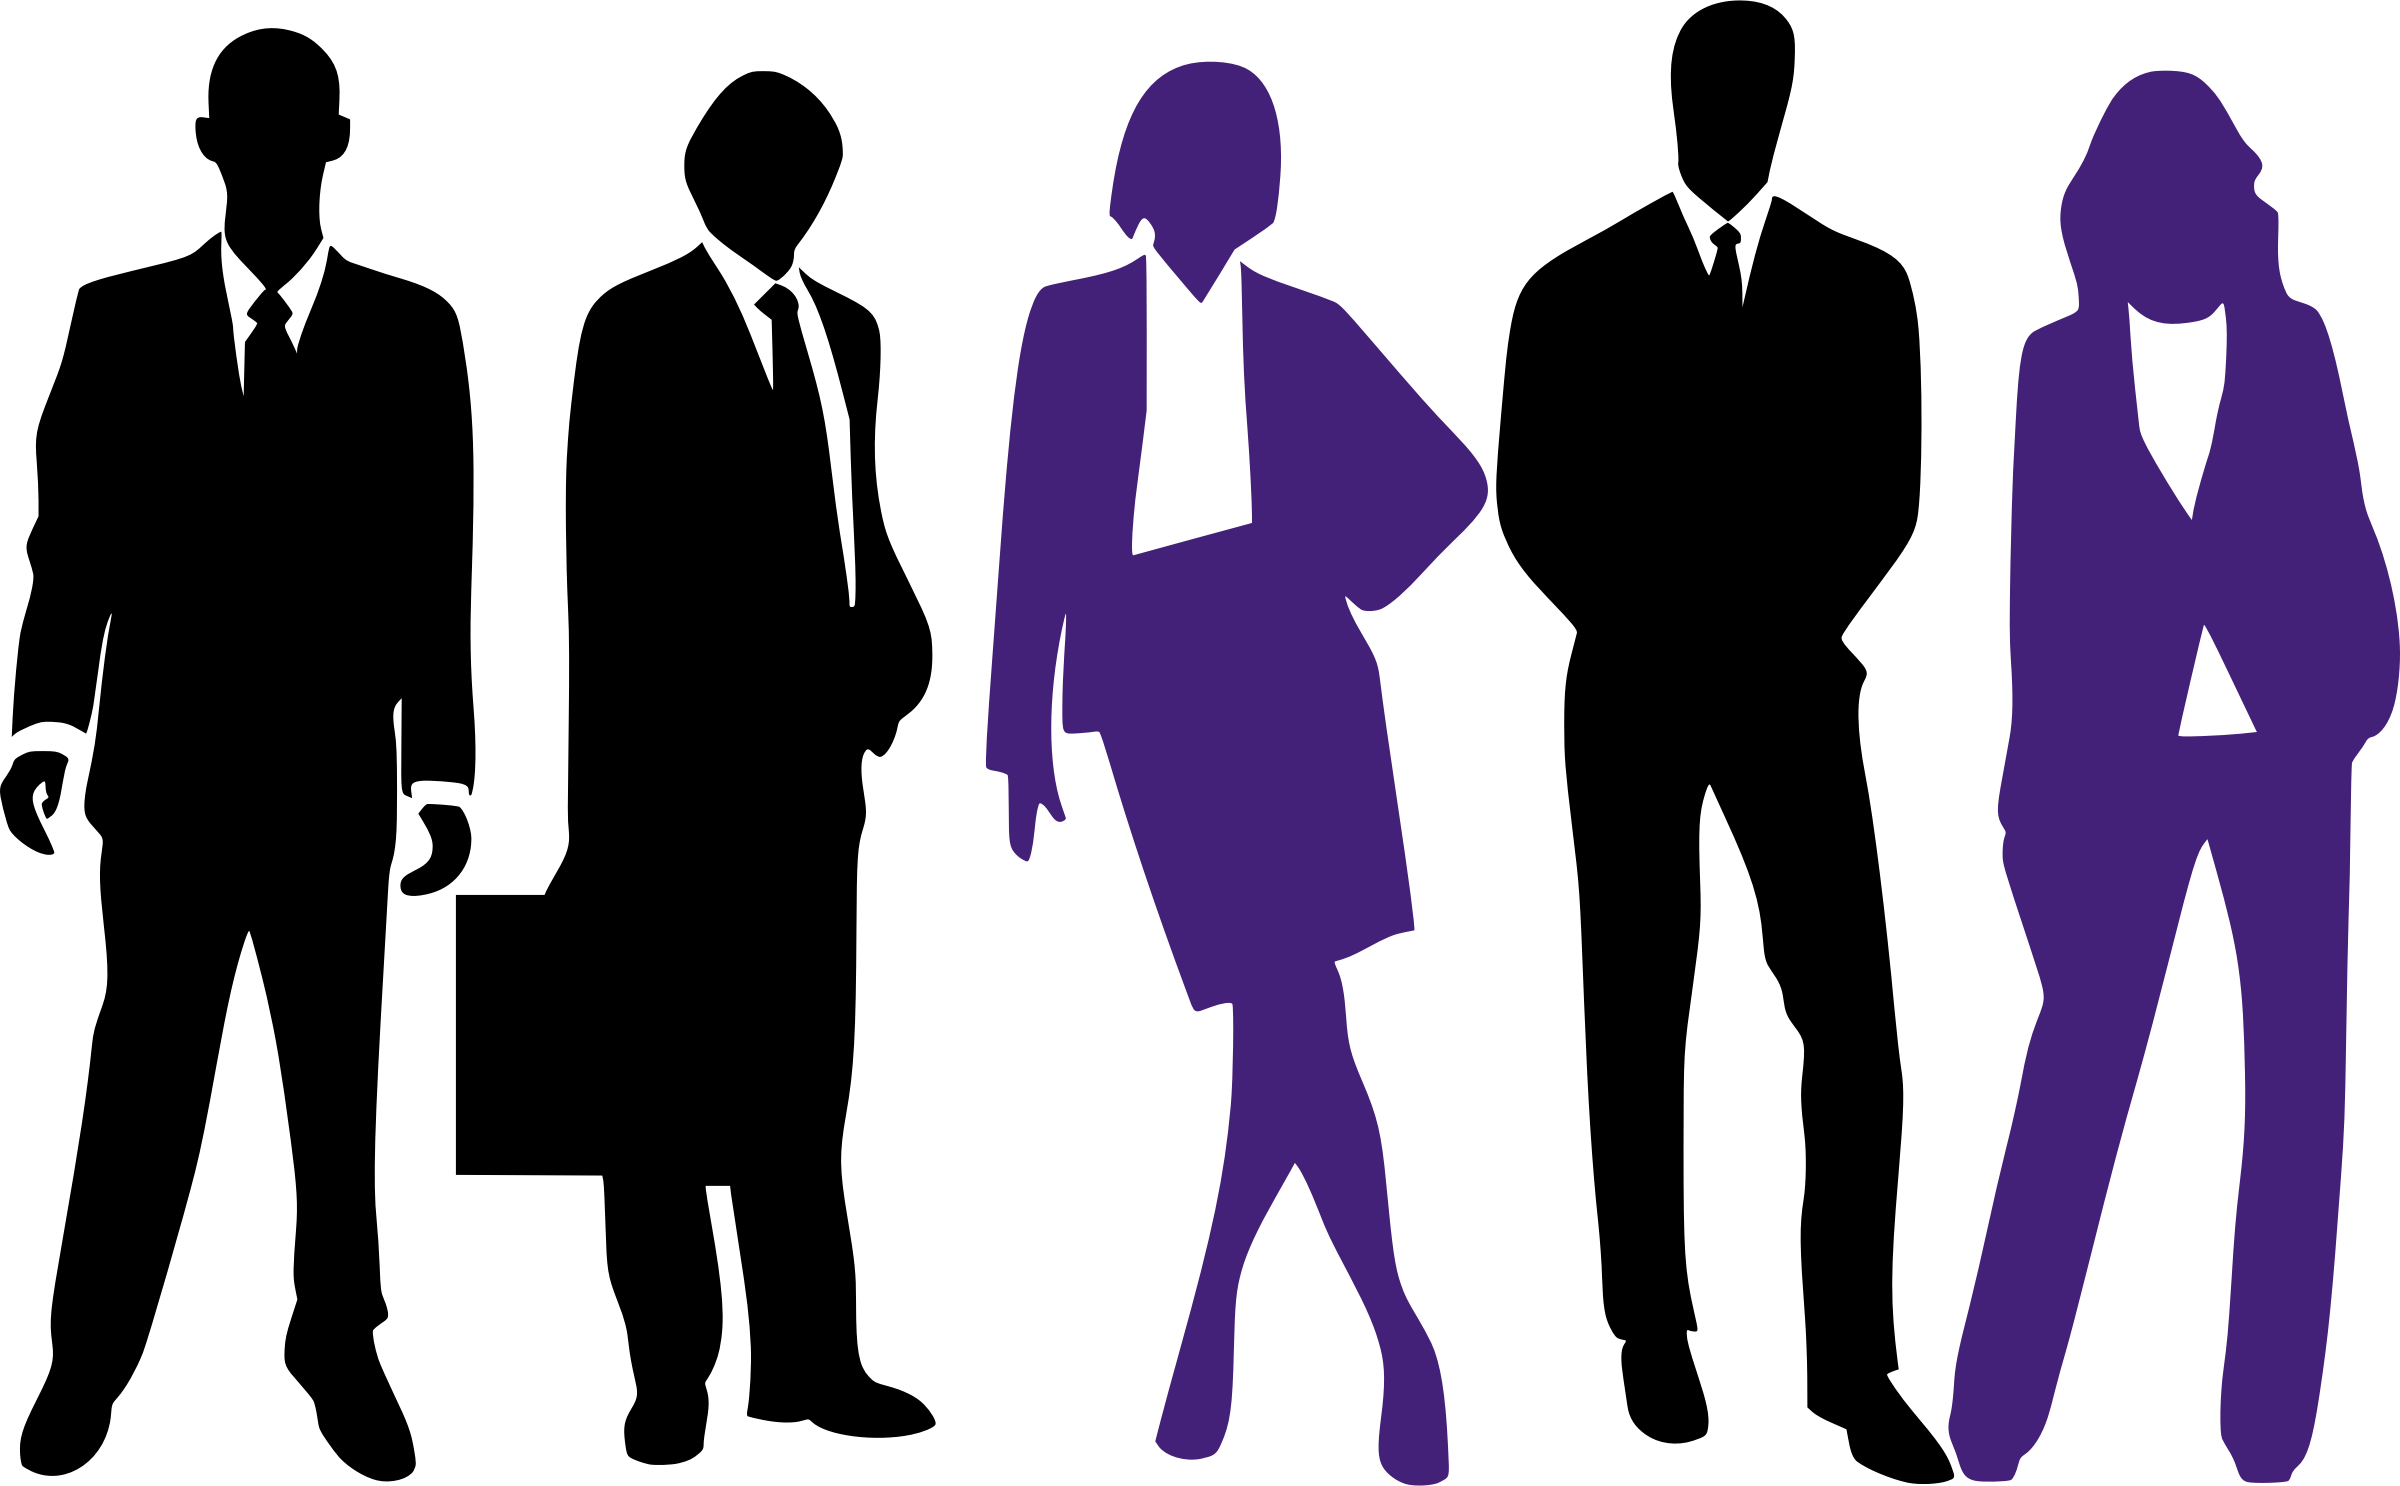 Employee clipart transparent.  collection of business